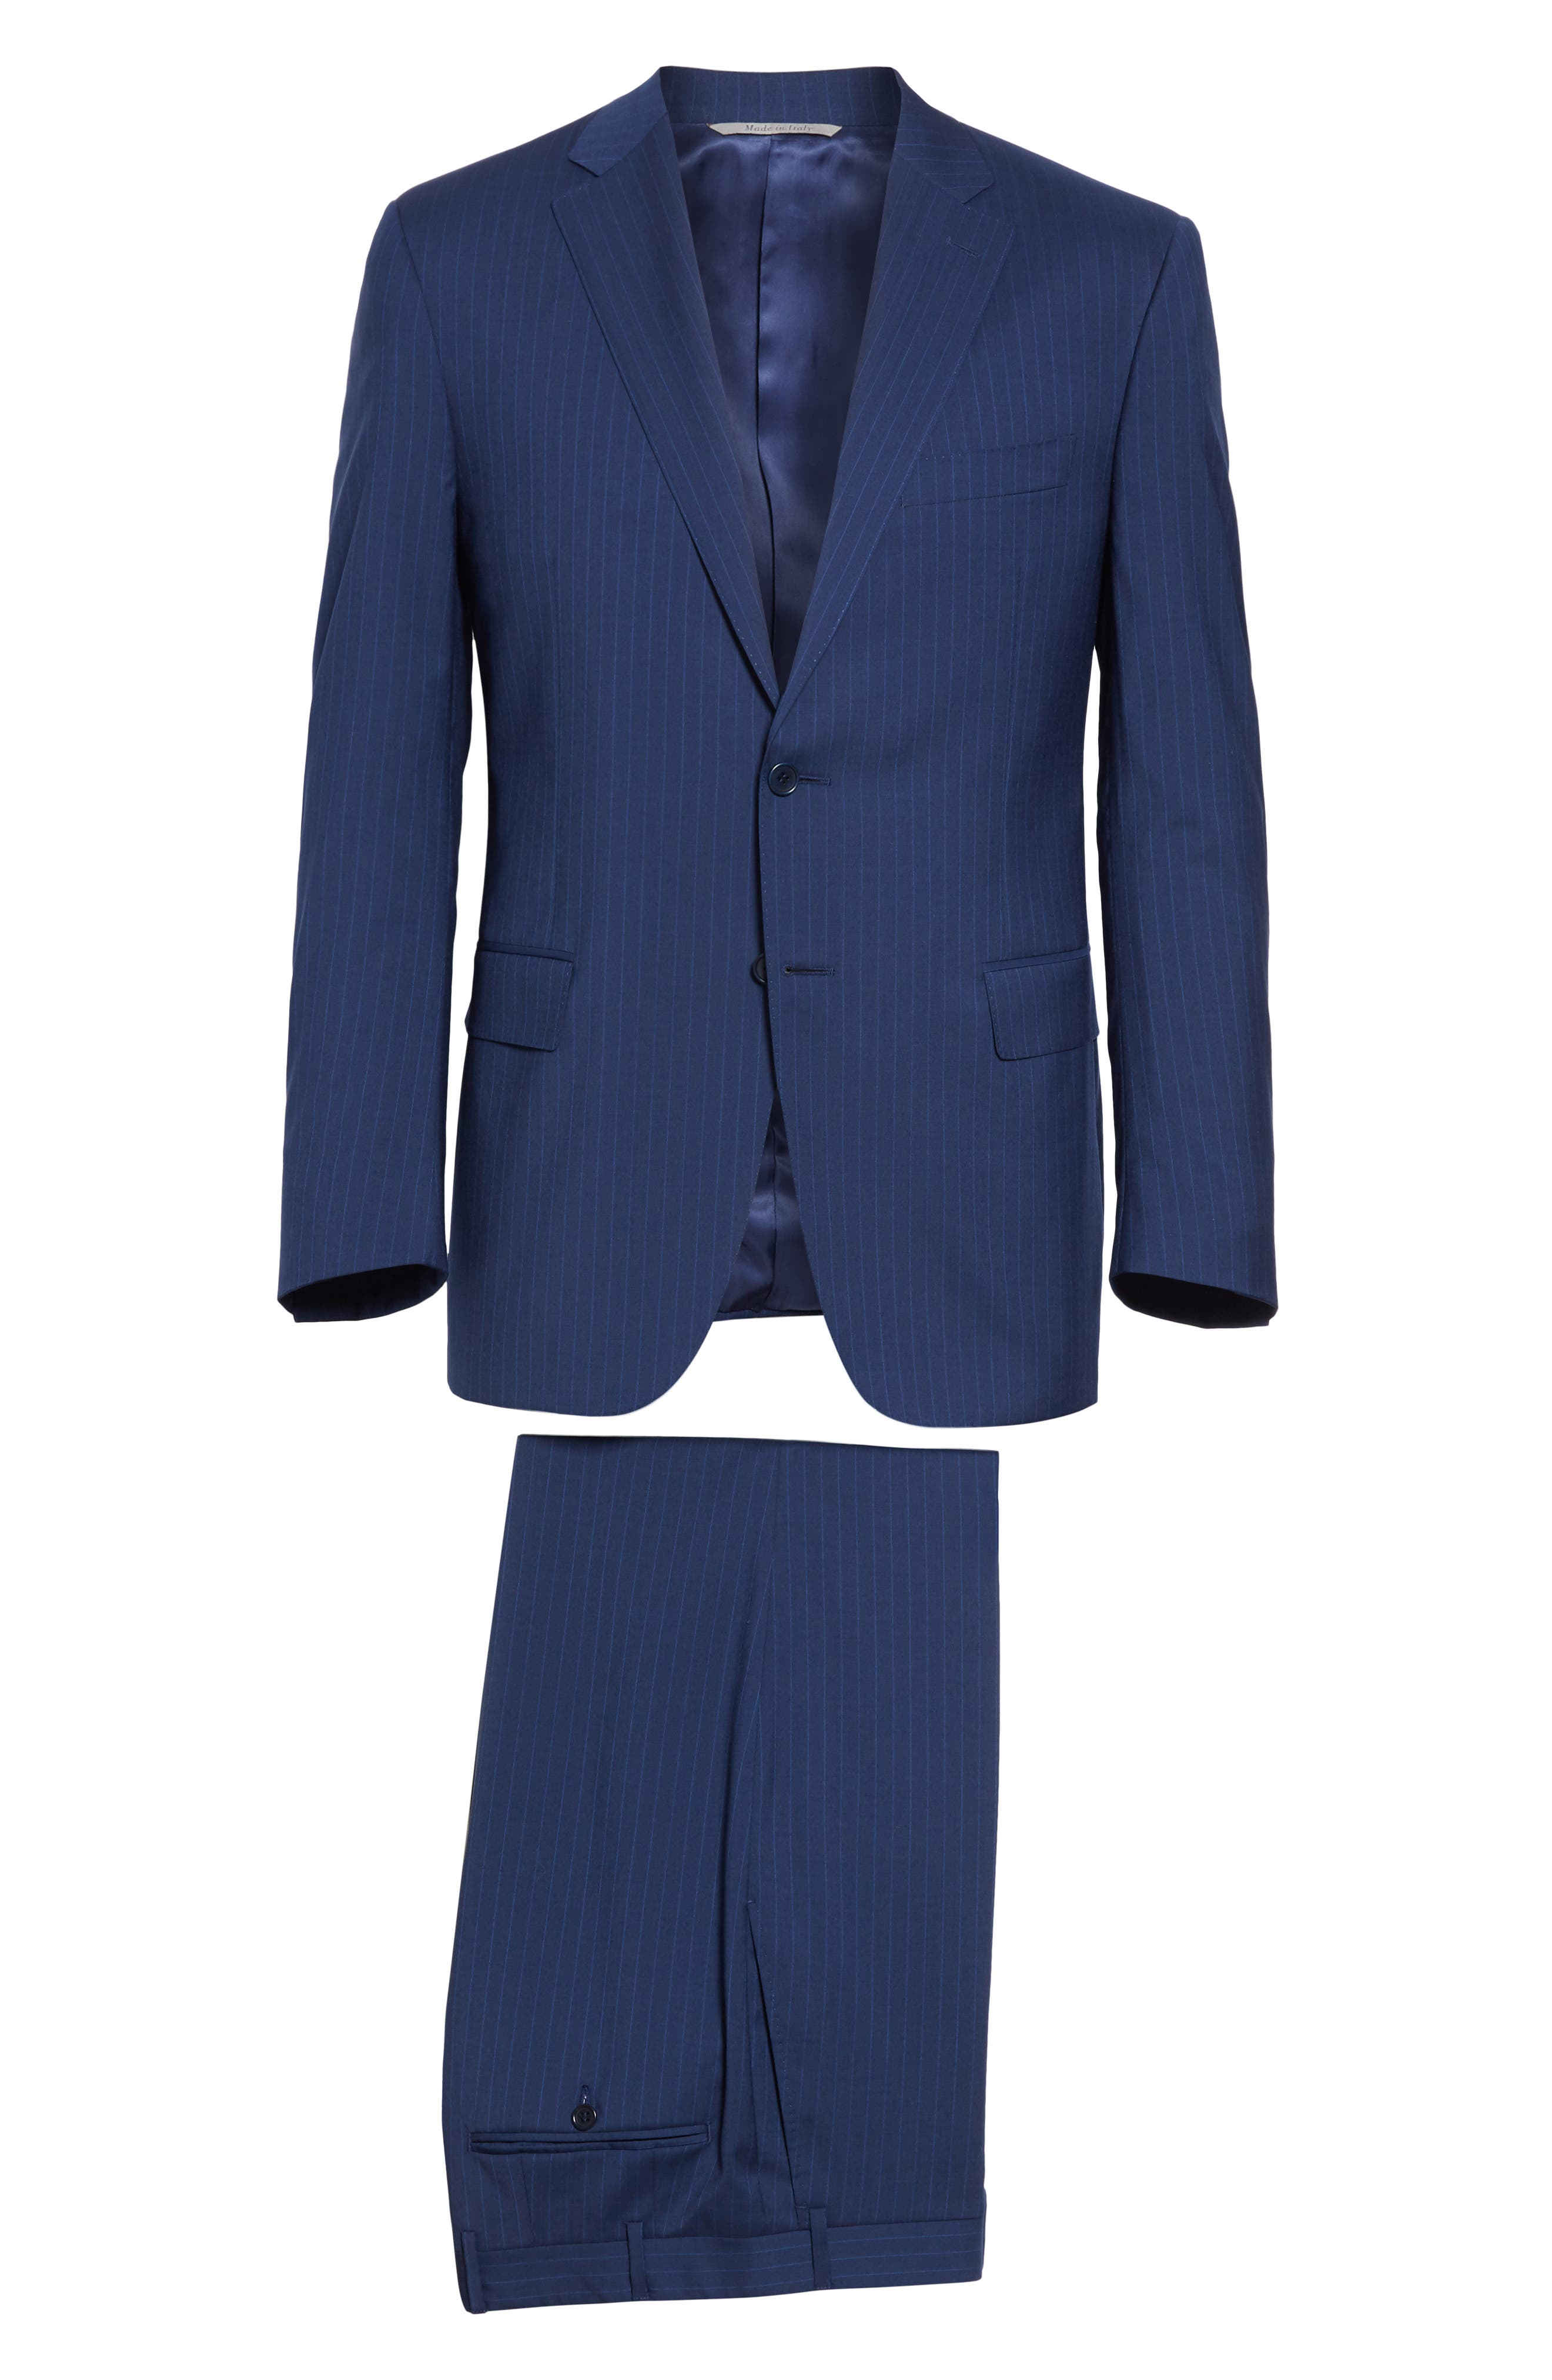 CANALI, Sienna Classic Fit Stripe Wool Suit, Alternate thumbnail 8, color, BLUE